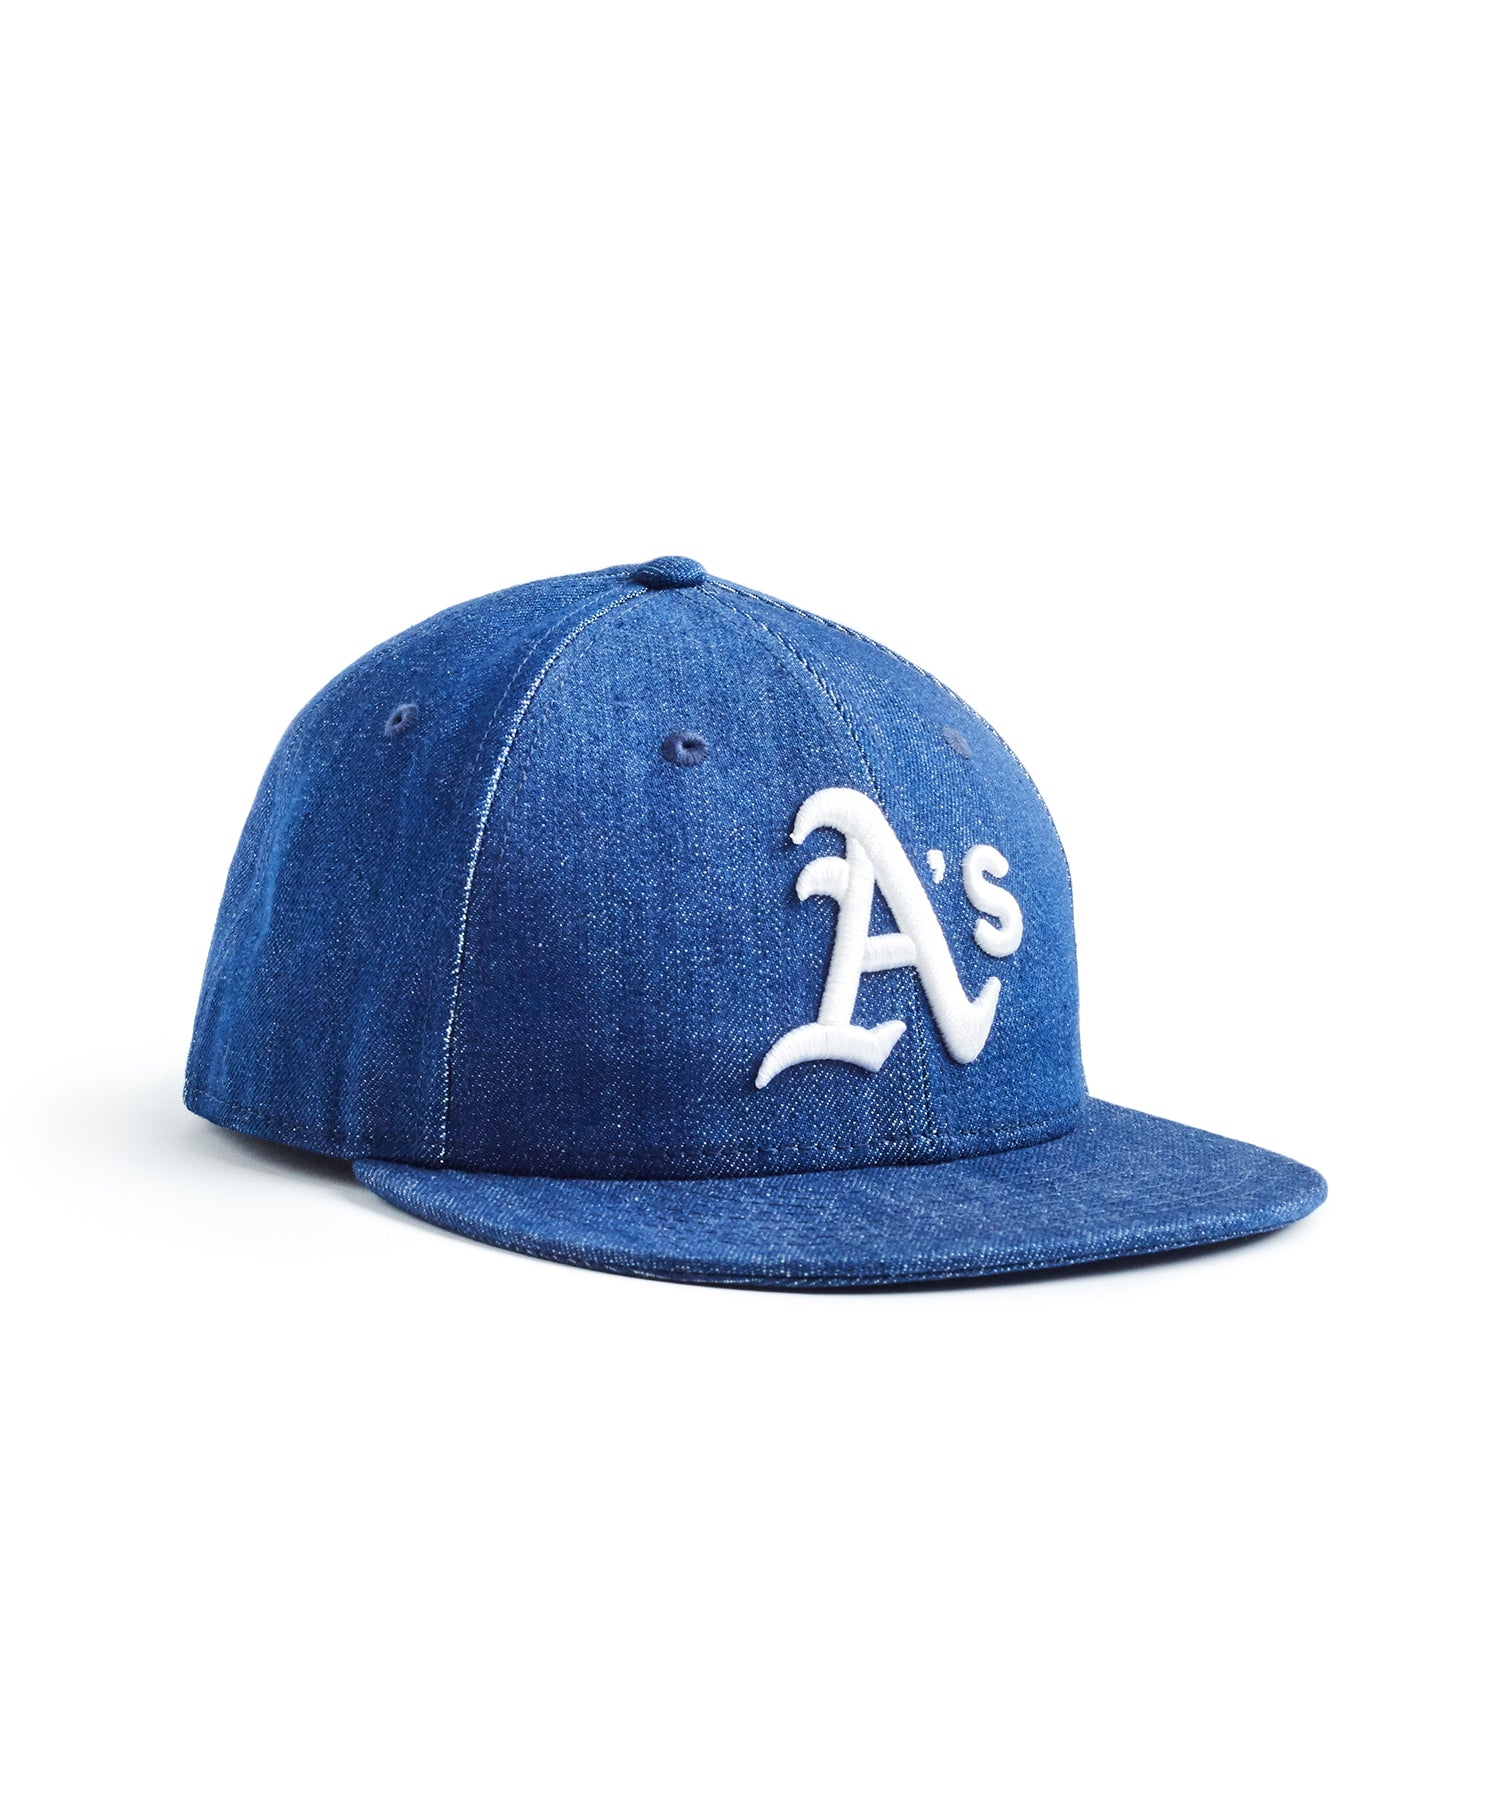 TODD SNYDER + NEW ERA MLB OAKLAND ATHLETICS CAP IN CONE DENIM